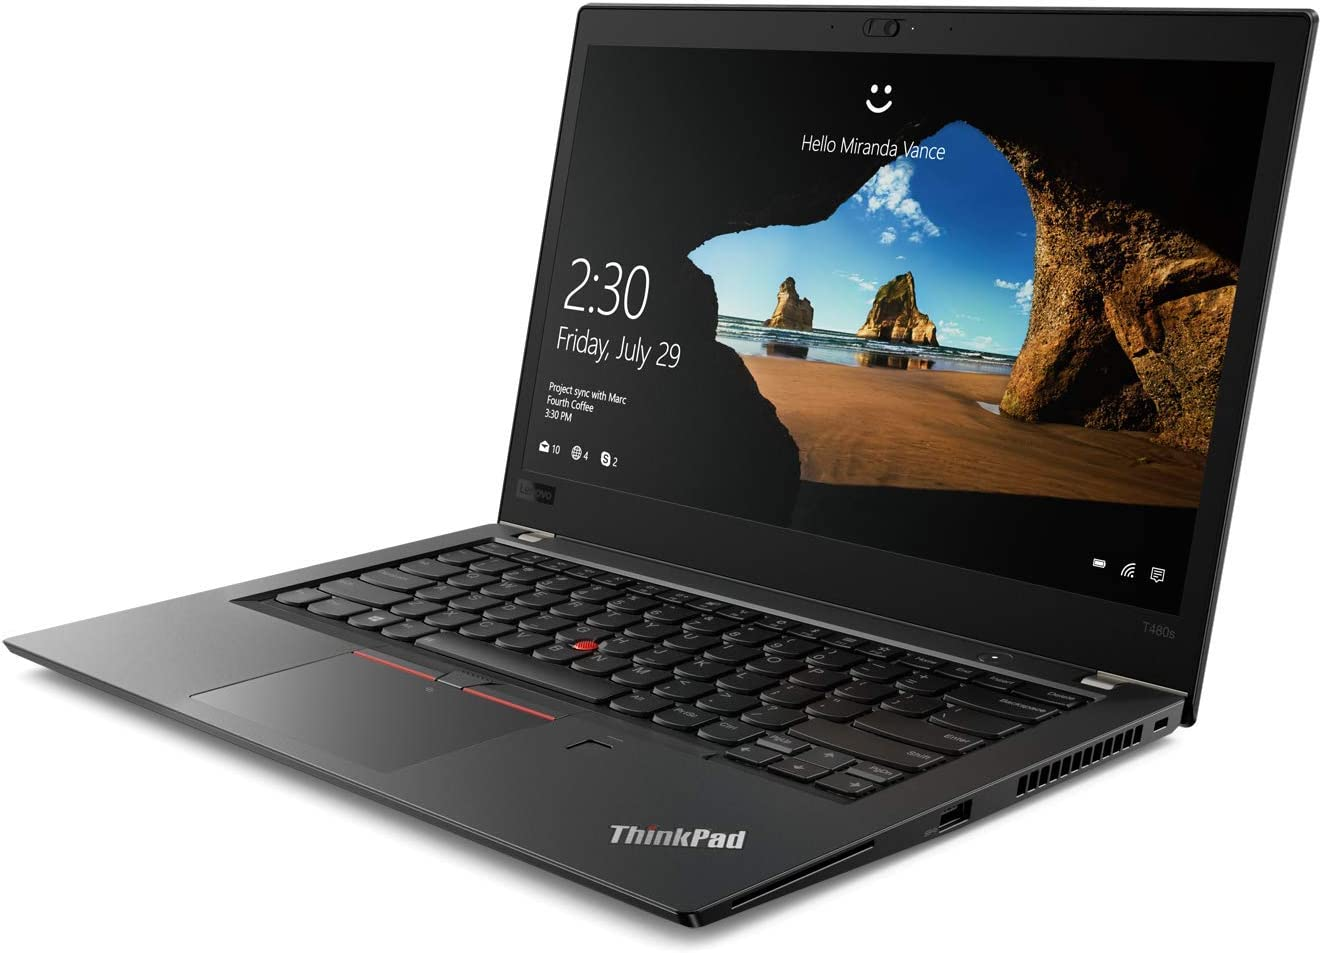 "OEM Lenovo ThinkPad T480s Laptop 14"" FHD IPS Display 1920x1080, Intel Quad Core i5-8250U, 16GB RAM, 256GB NVMe, Fingerprint, W10P"